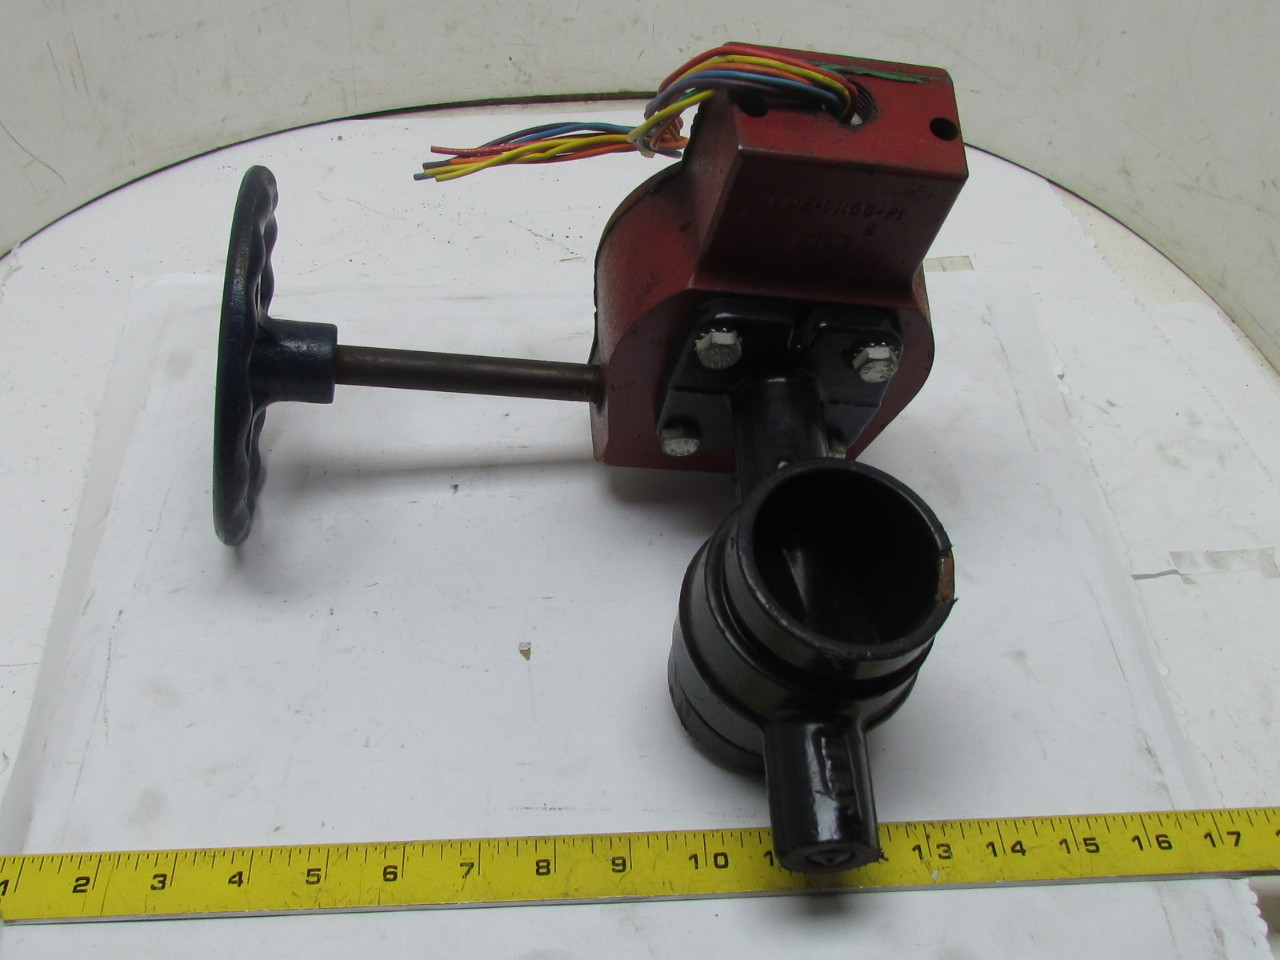 Gd 4765 8n 2 1 2 grooved type butterfly valve manual for Motor operated butterfly valve